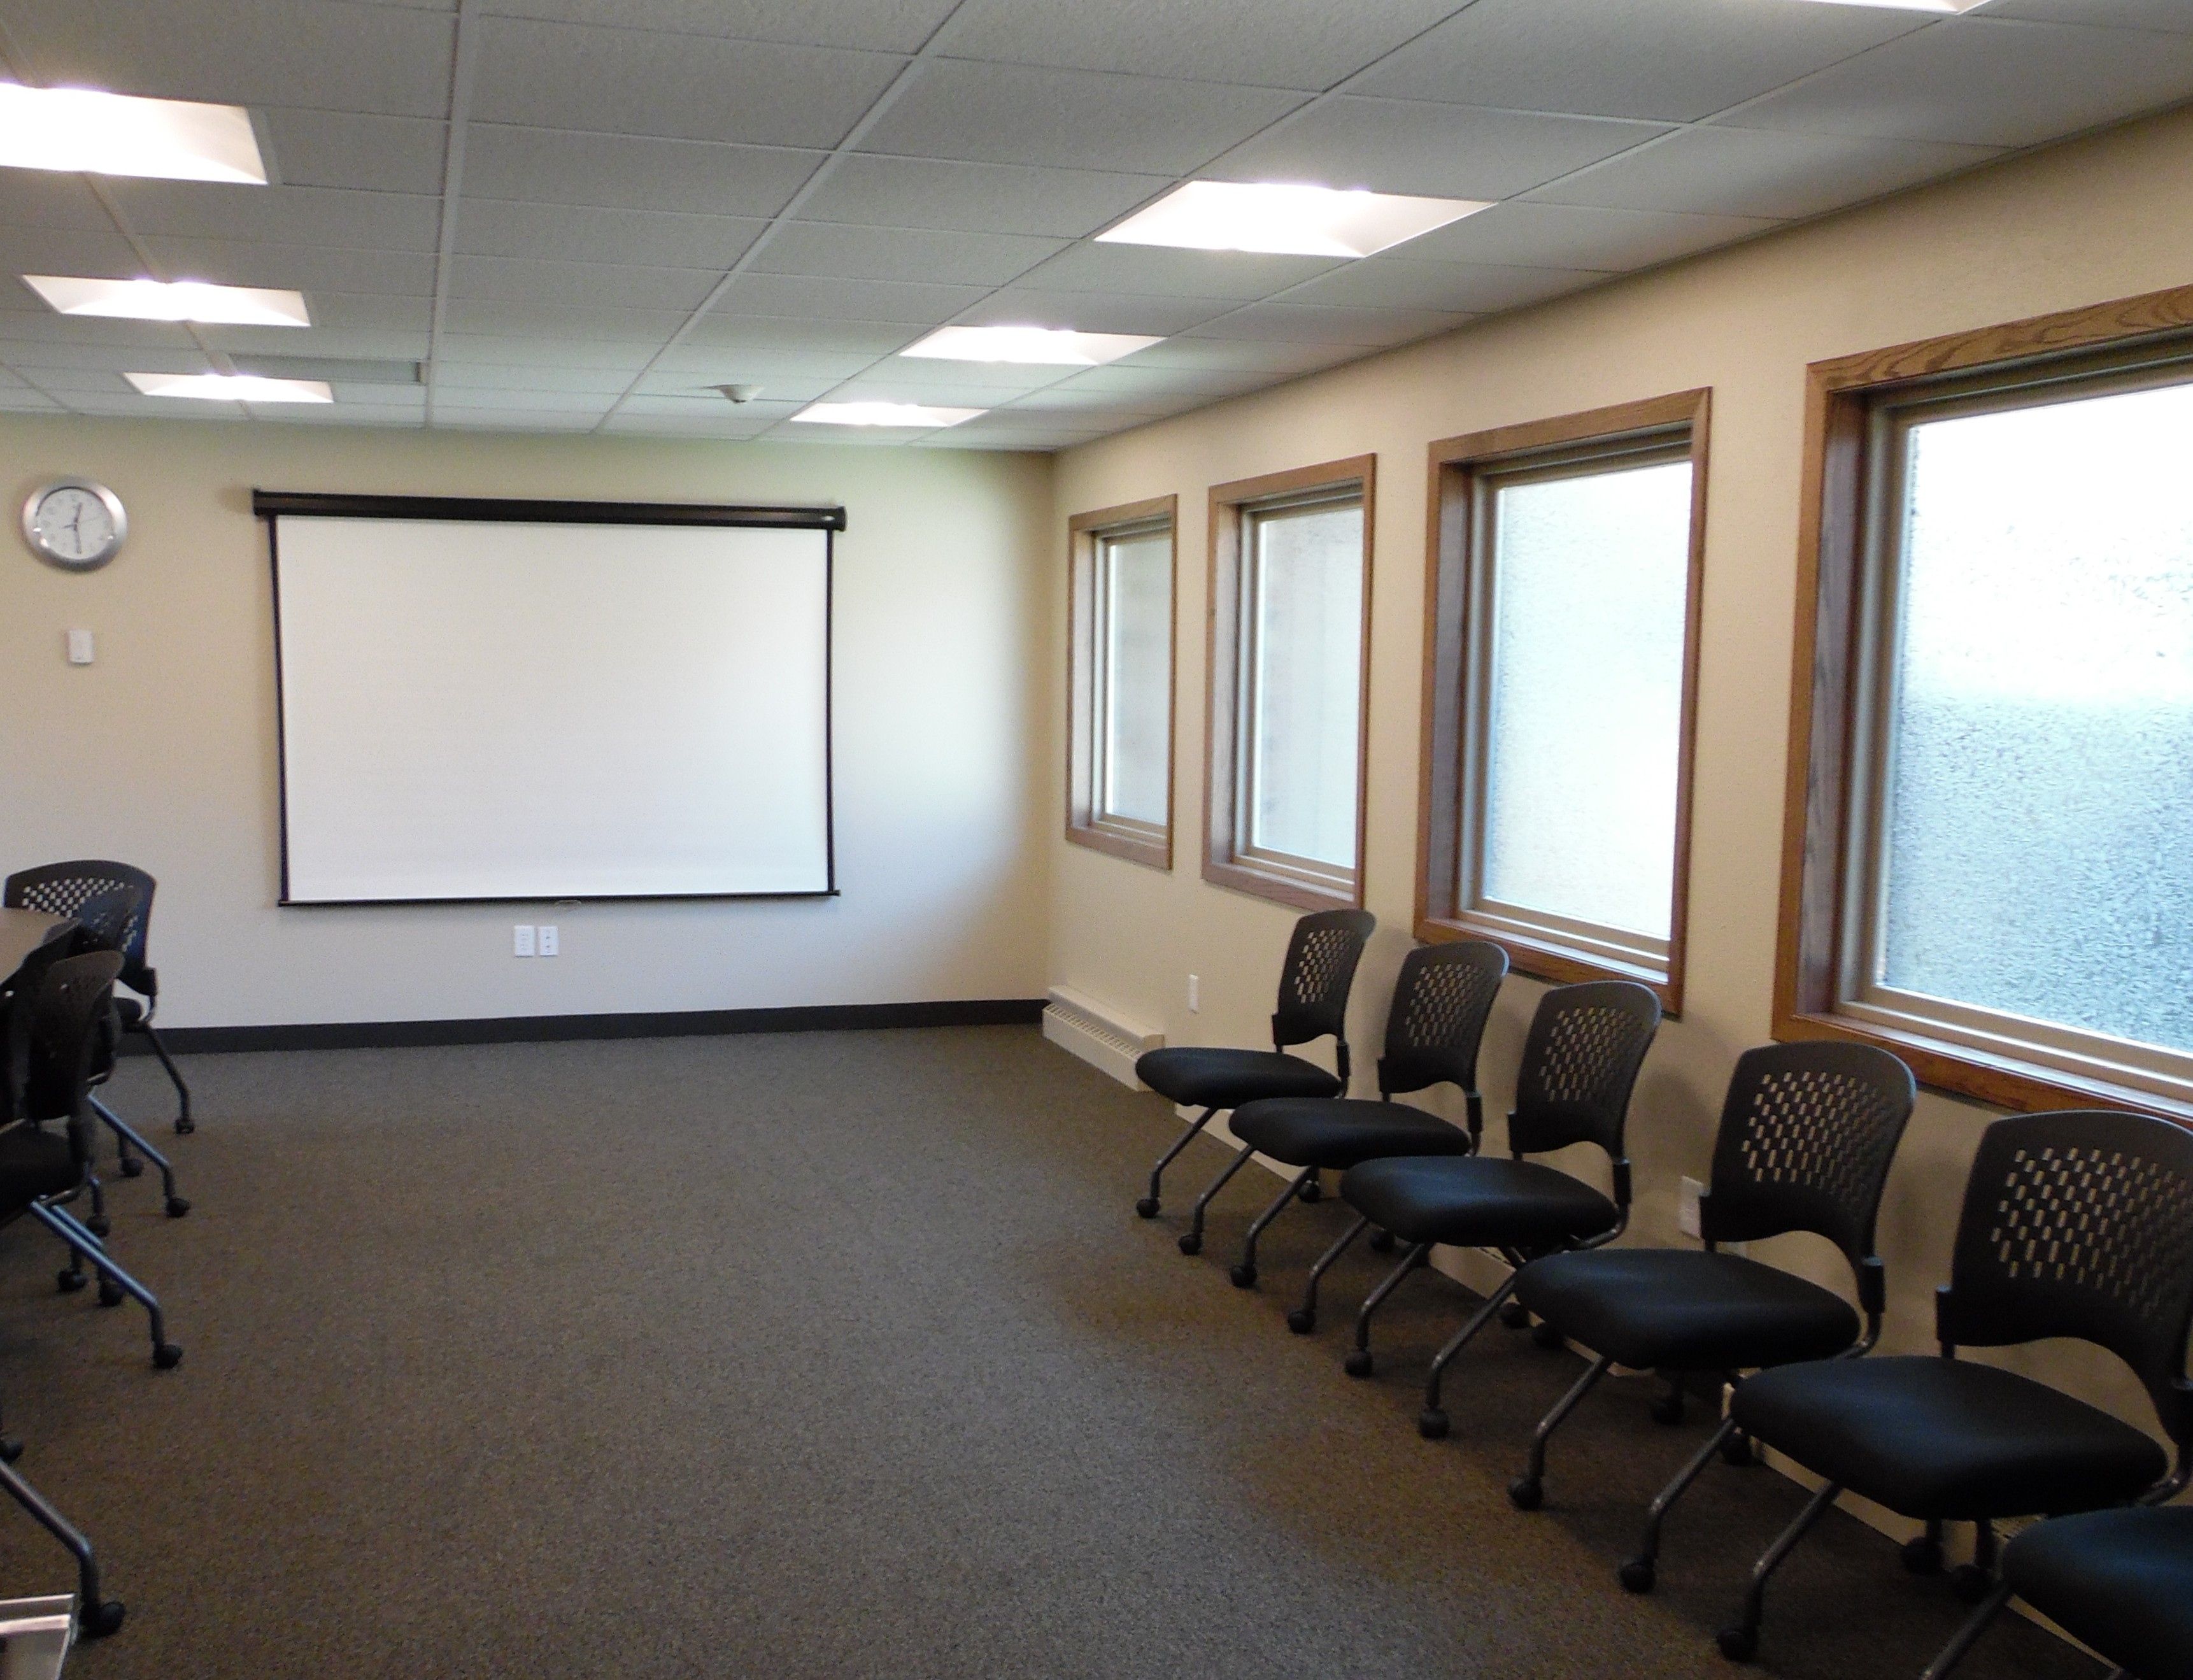 Central Mn Mental Health Center Remodel Alliance Building Corporation